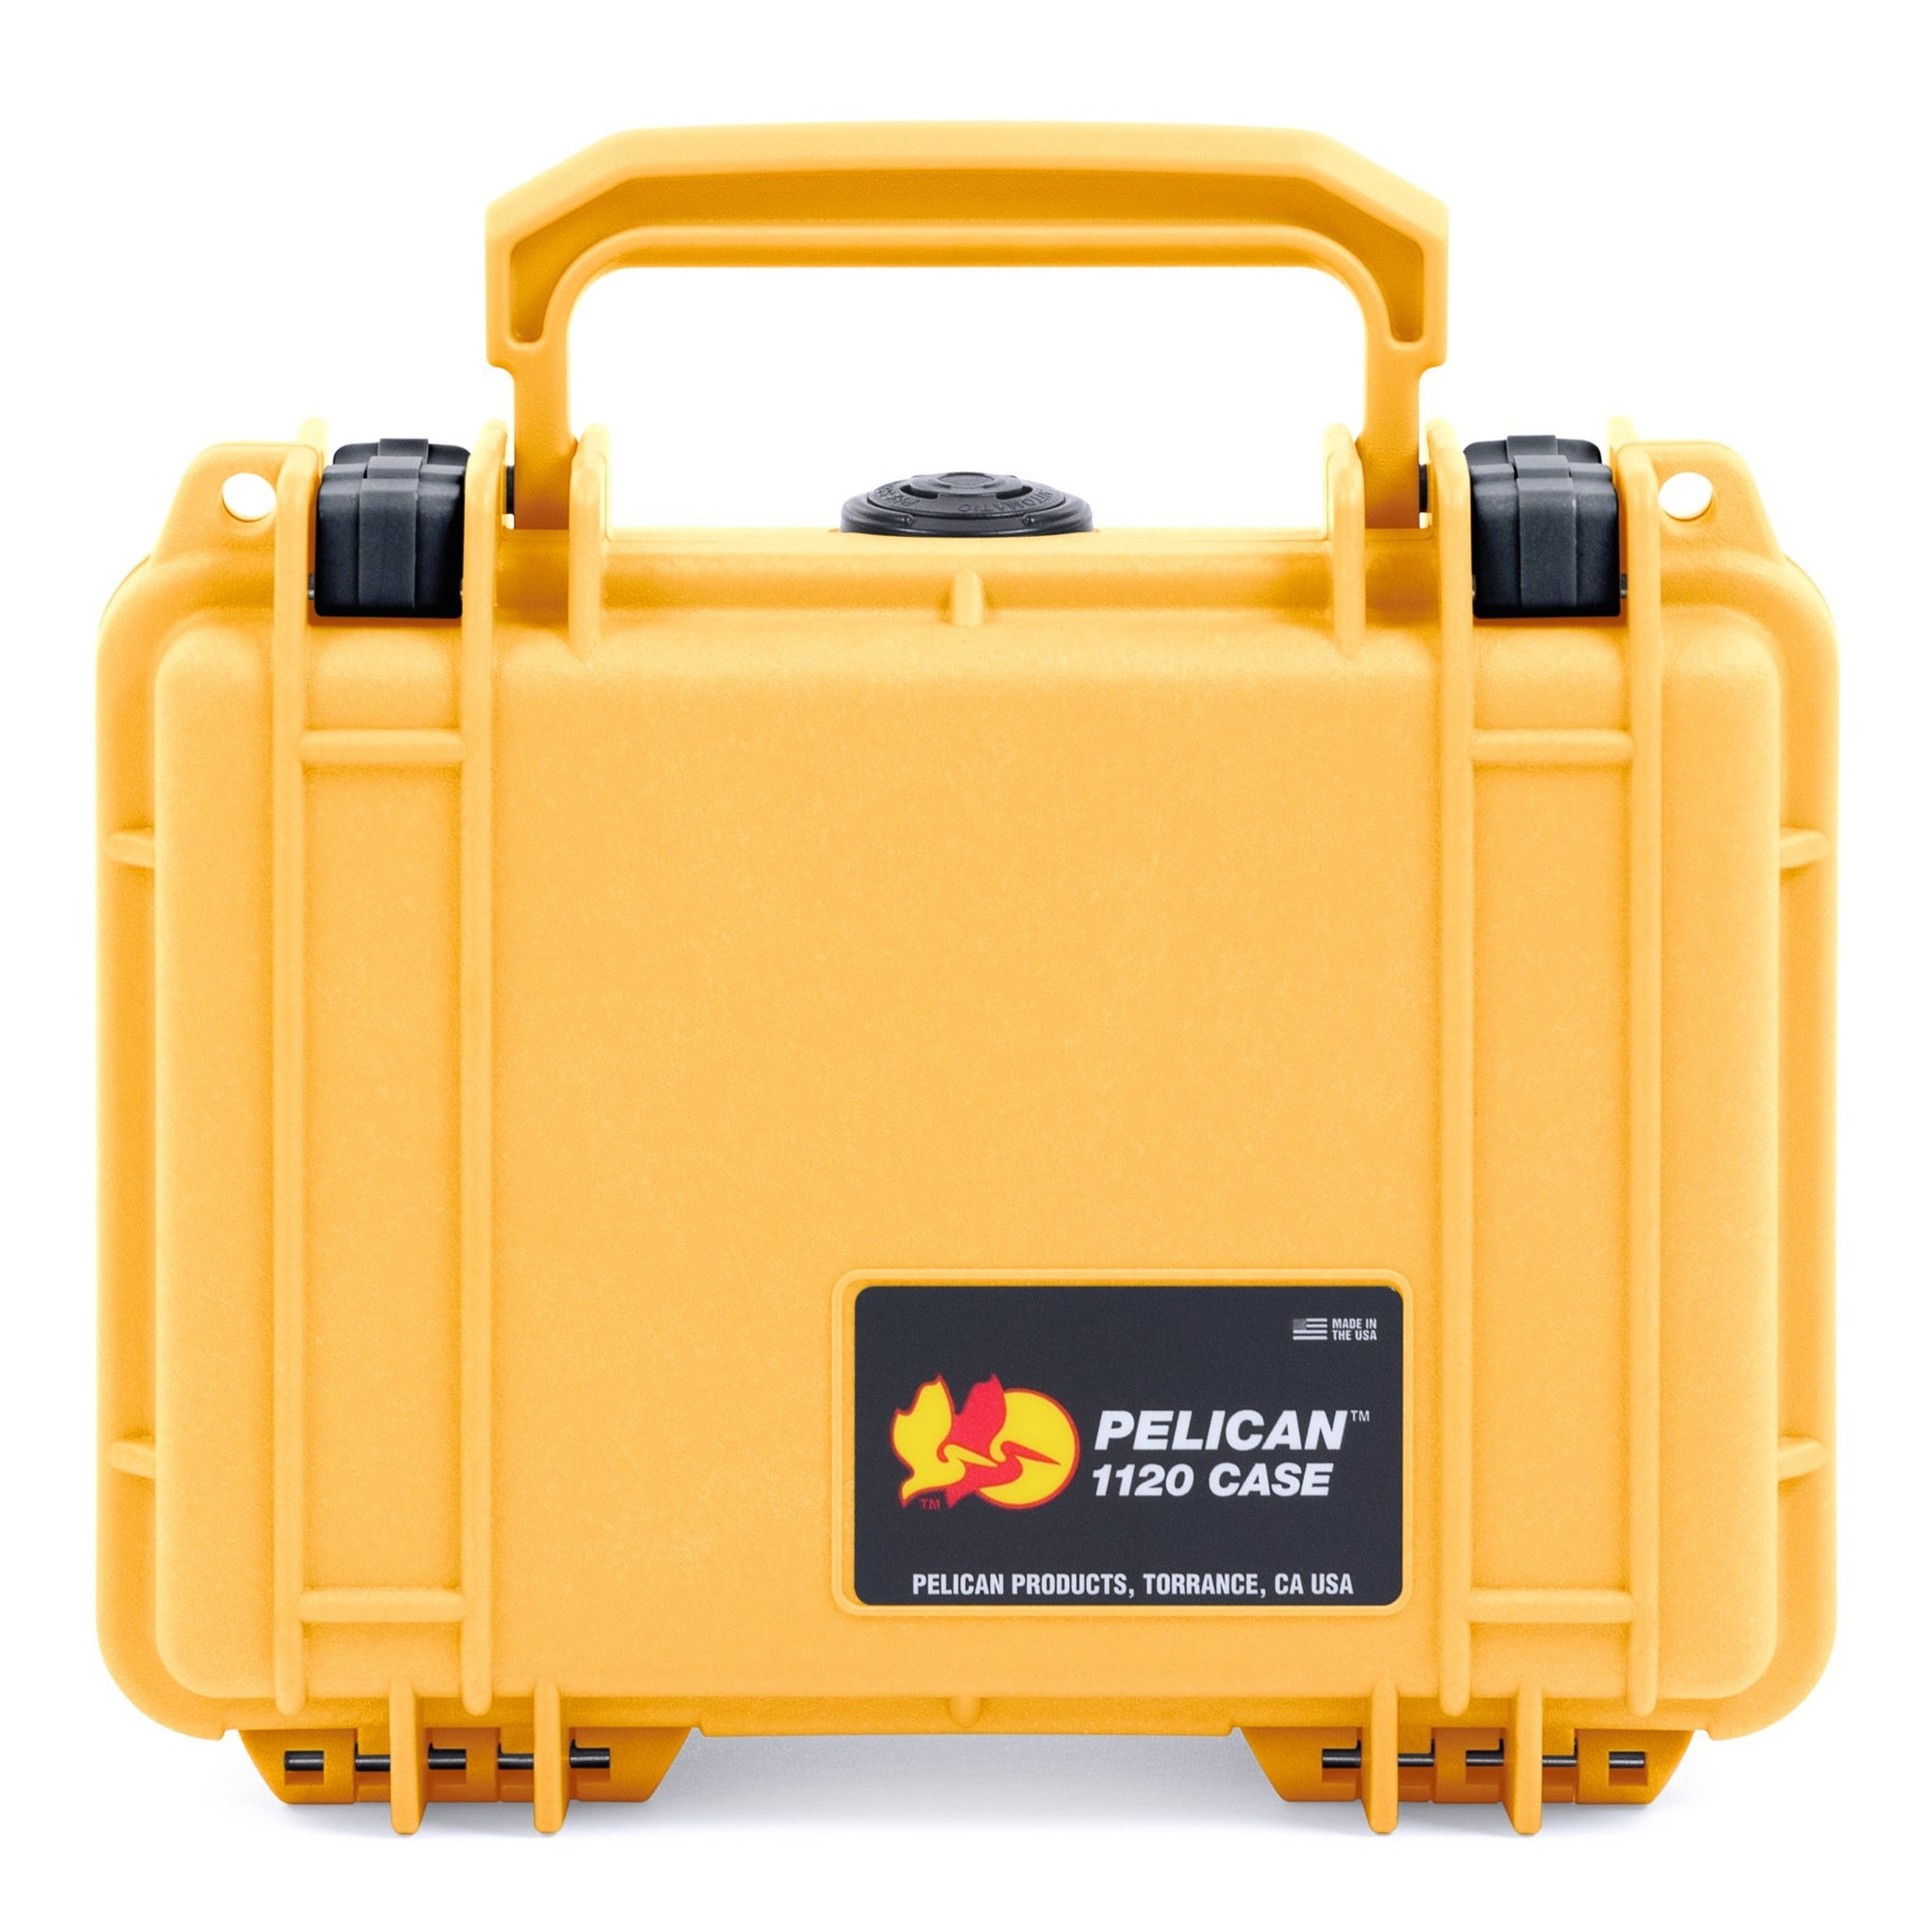 Pelican 1120 Case, Yellow with Black Latches - Pelican Color Case